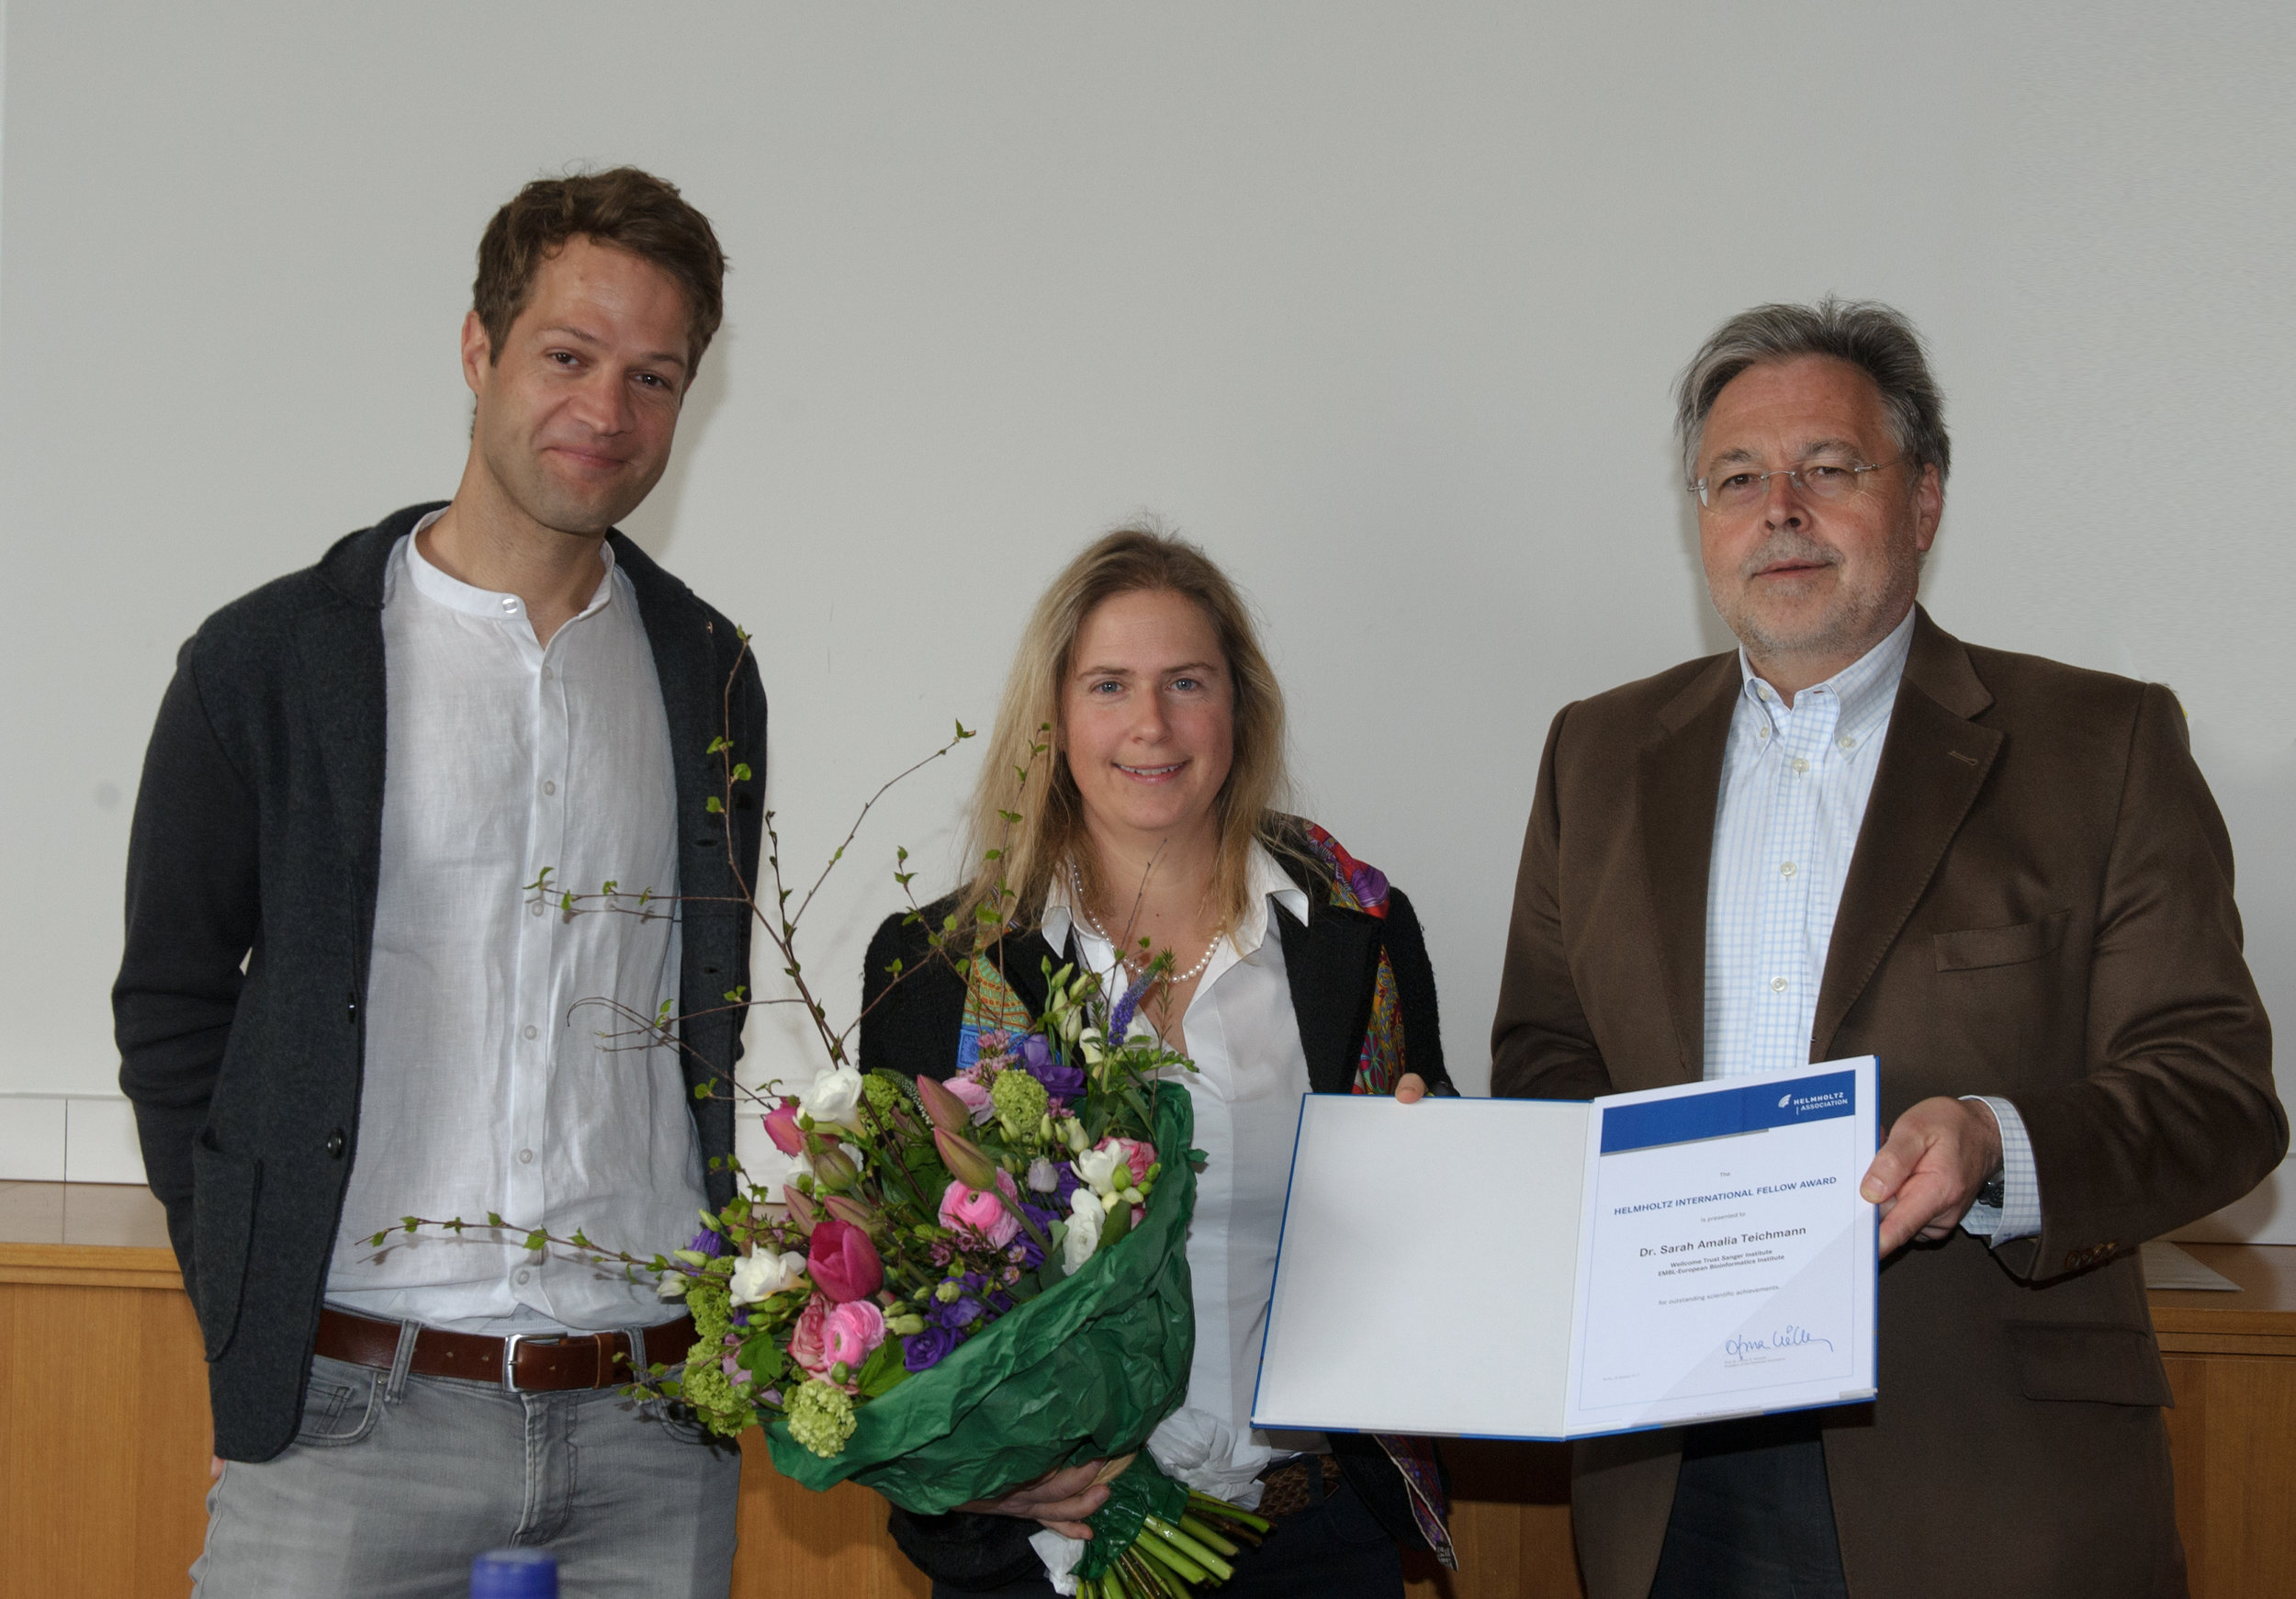 Receiving the award at the ceremony with fabian theis (left) and gunter wess (right)